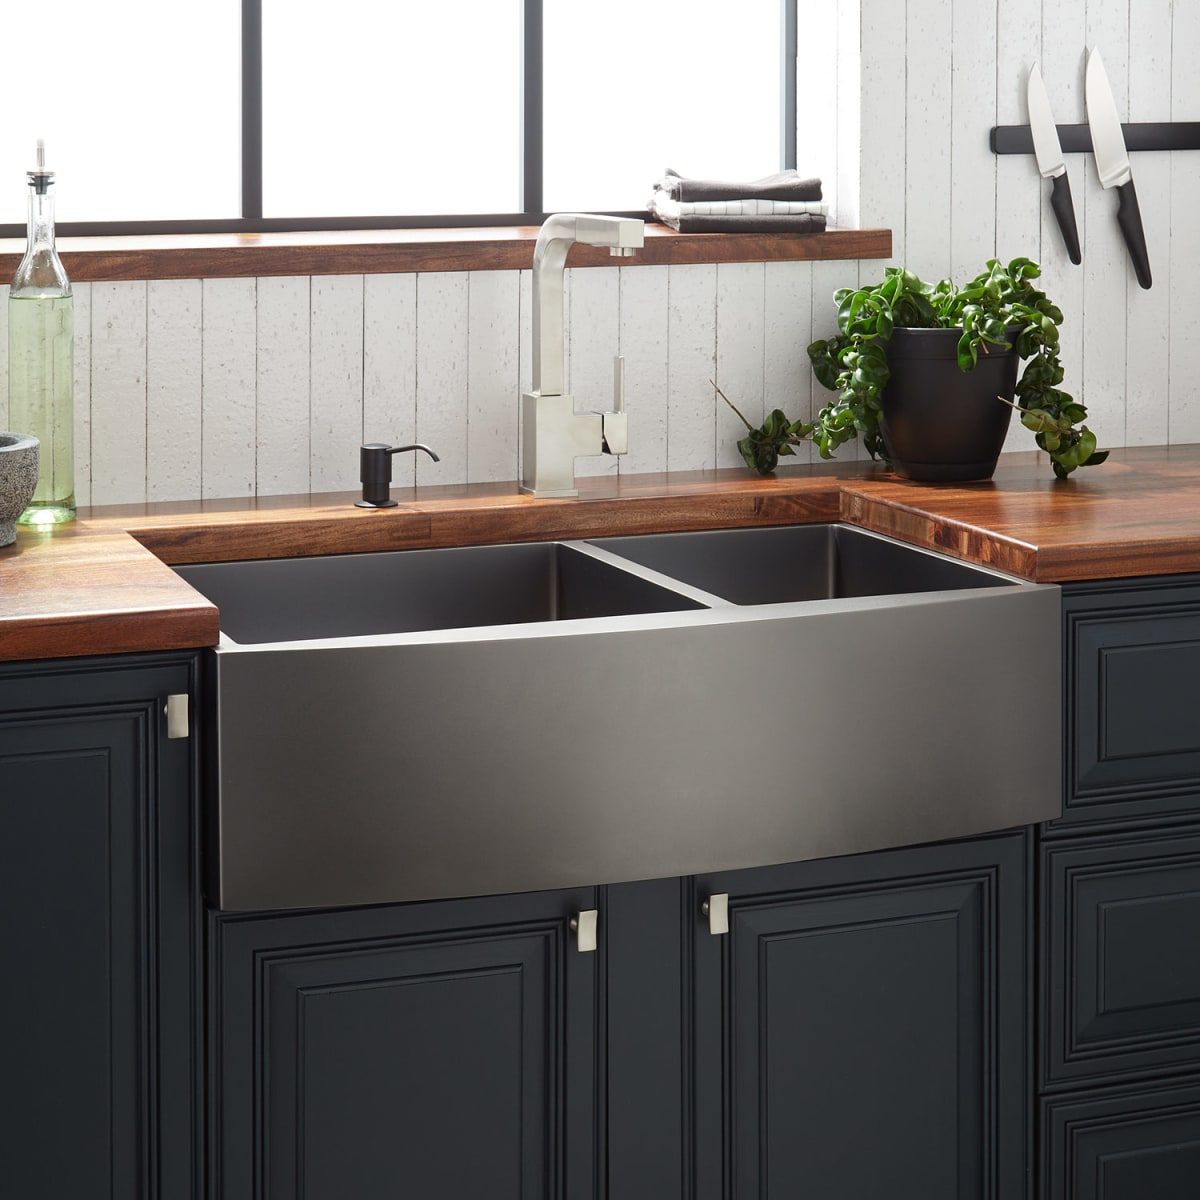 """Shop Atlas 33"""" Farmhouse Double Basin Stainless Steel Kitchen Sink from Build.com on Openhaus"""